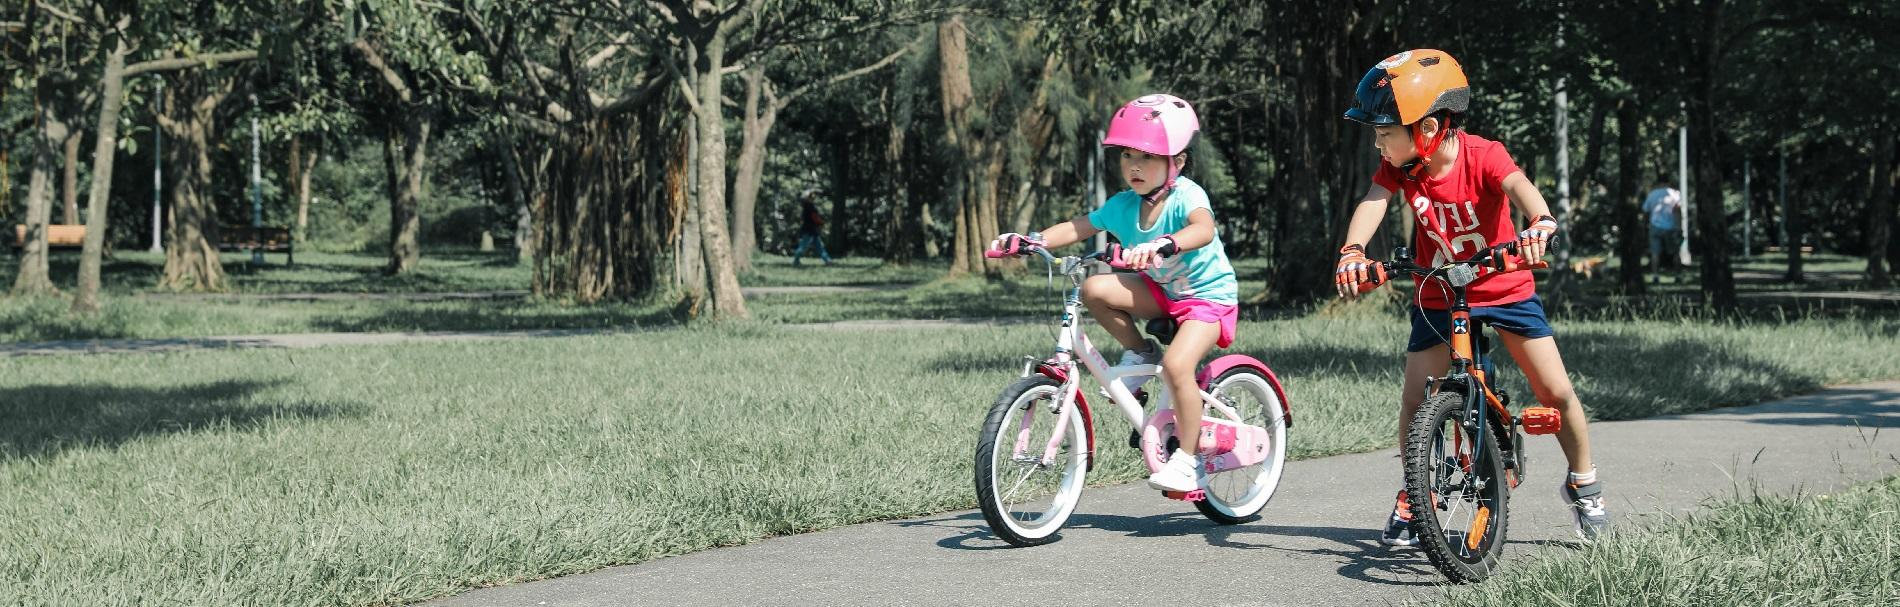 How To Choose The Best Bike For Kids (Buyer's Guide)